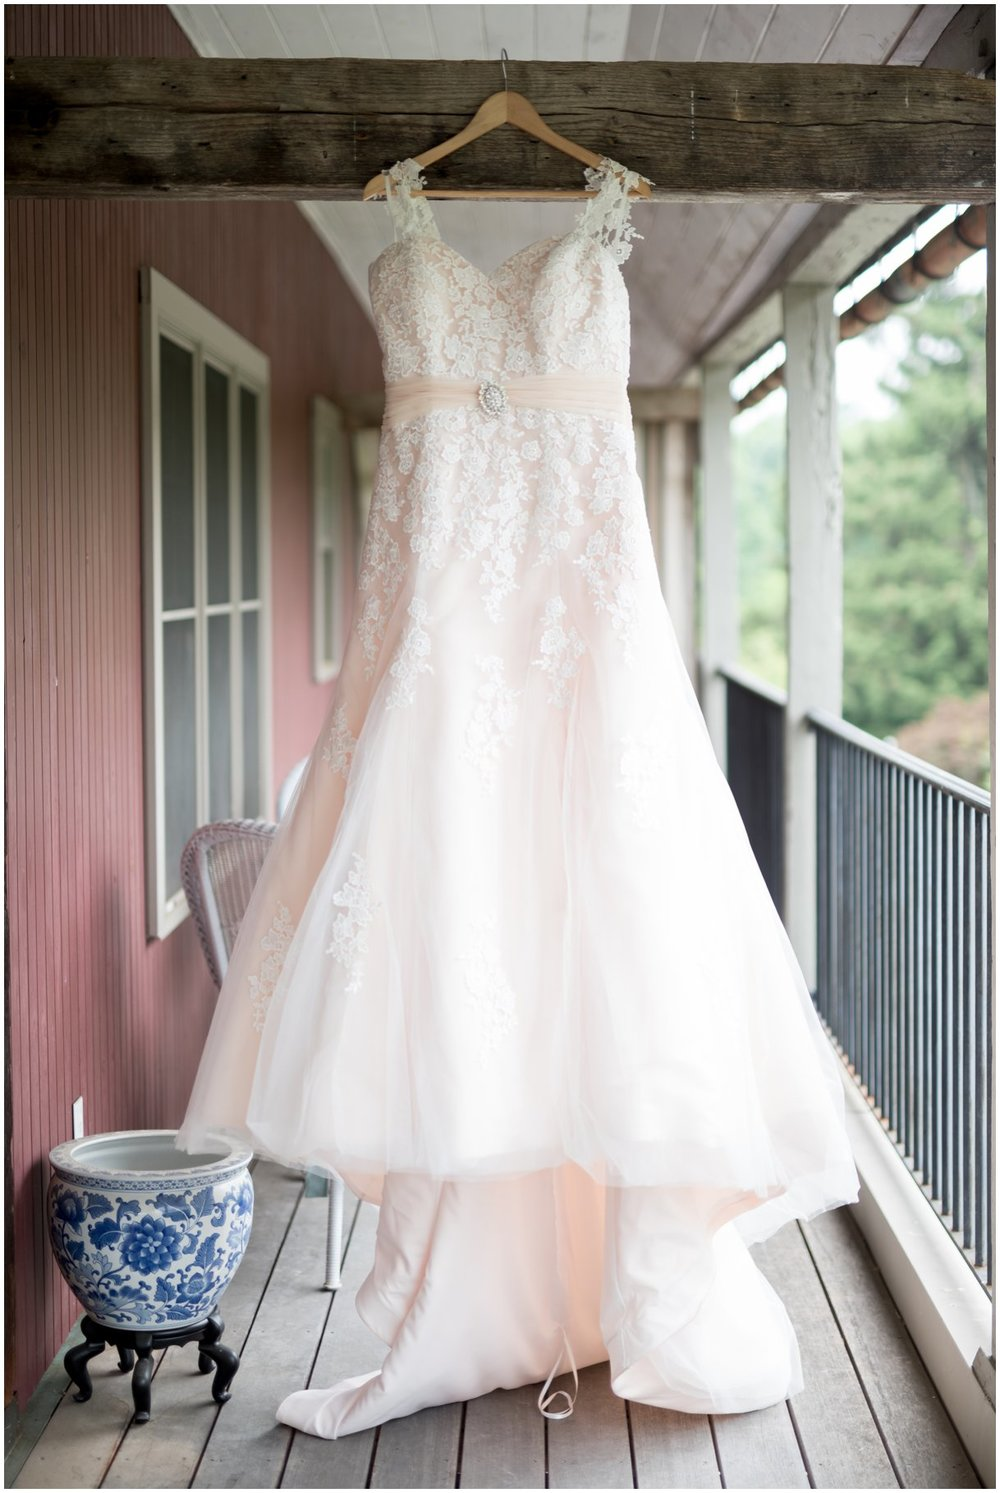 Dress details at Pheasant Run Bed and Breakfast Lancaster PA bridal gown detail photo